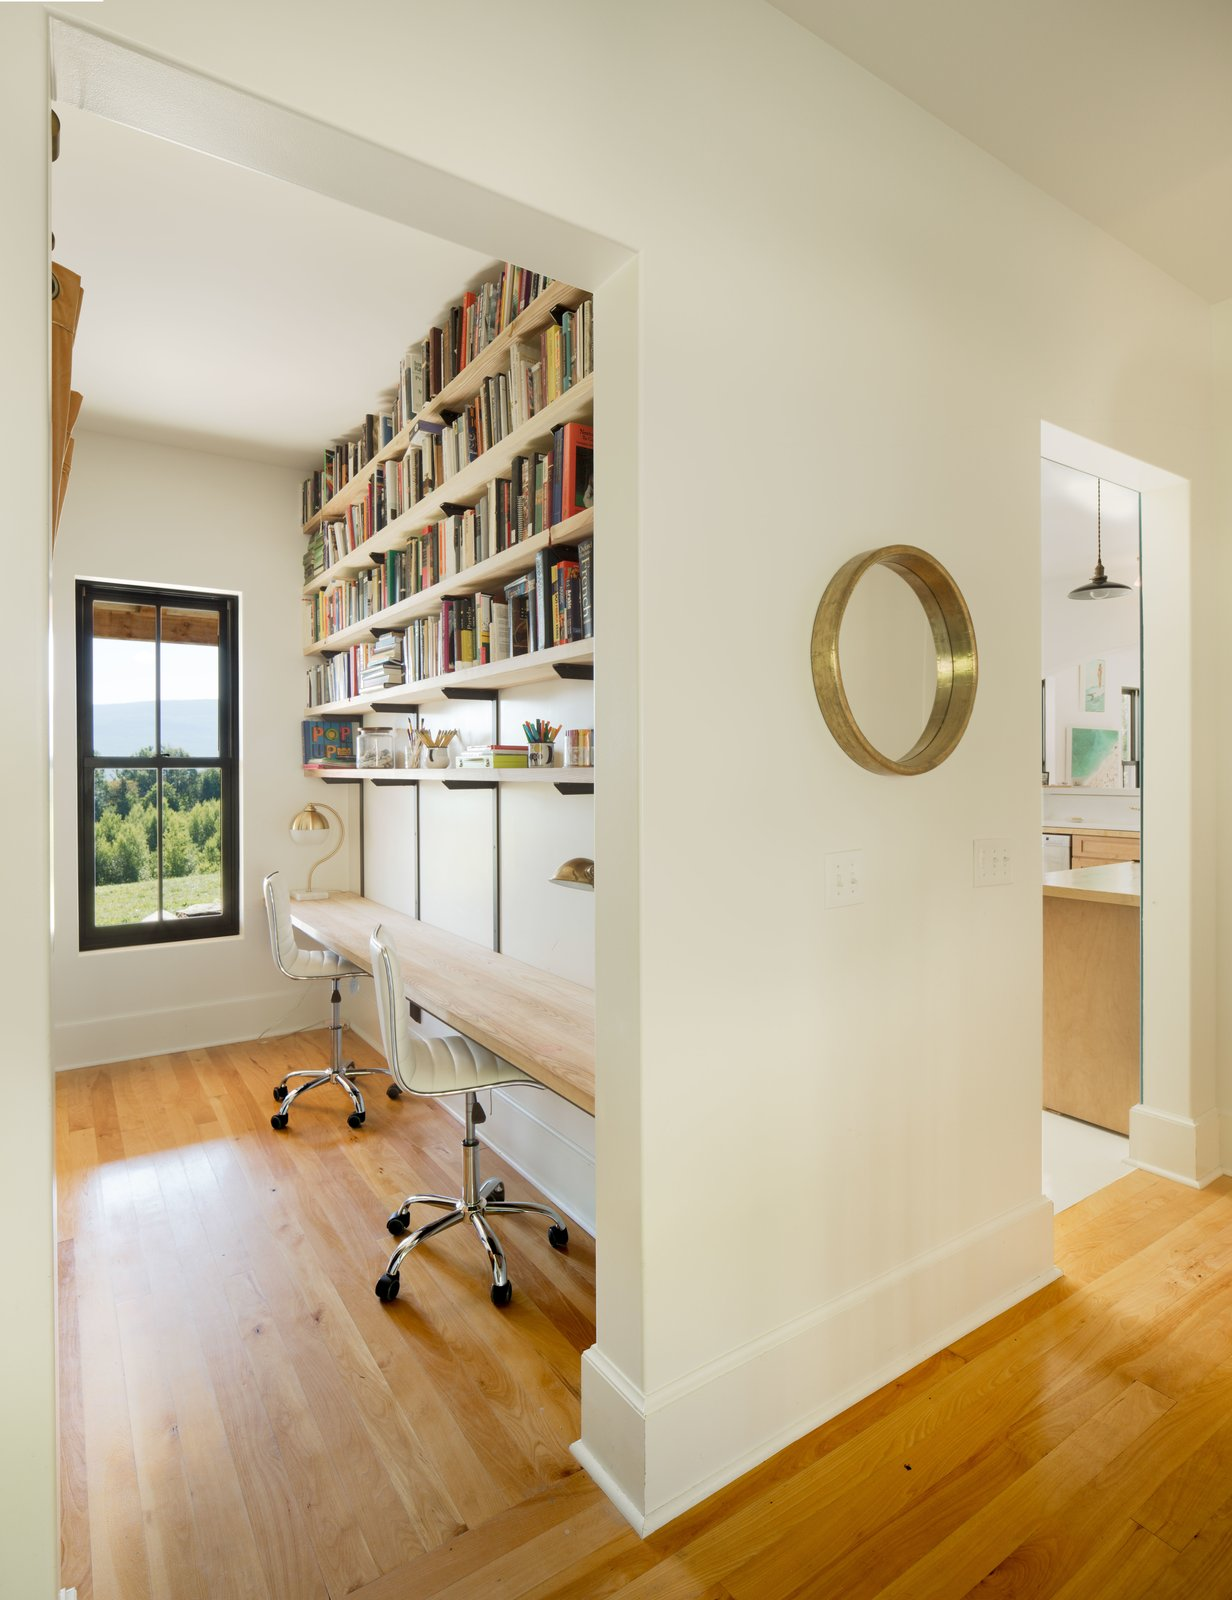 Office, Lamps, Shelves, Chair, Medium Hardwood Floor, Study Room Type, and Desk Study Desks with mountain view.  Photo 3 of 6 in 6 Ways to Turn Your Home Office Into a Distraction-Free Zone from Contemporary Vermont Farmhouse